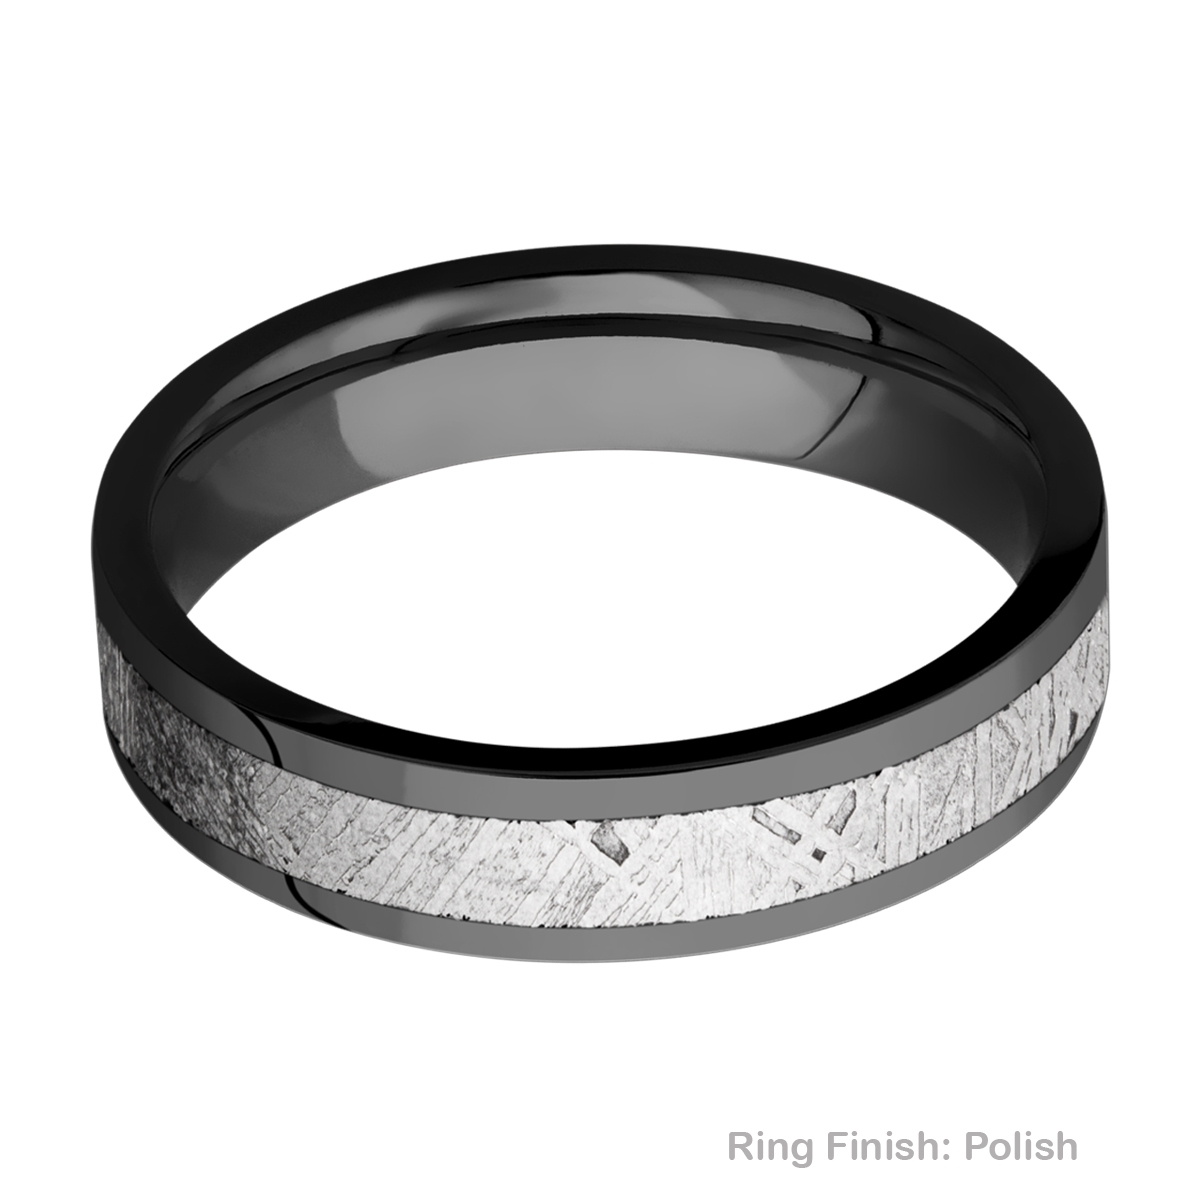 Lashbrook Z5F13/METEORITE Zirconium Wedding Ring or Band Alternative View 3